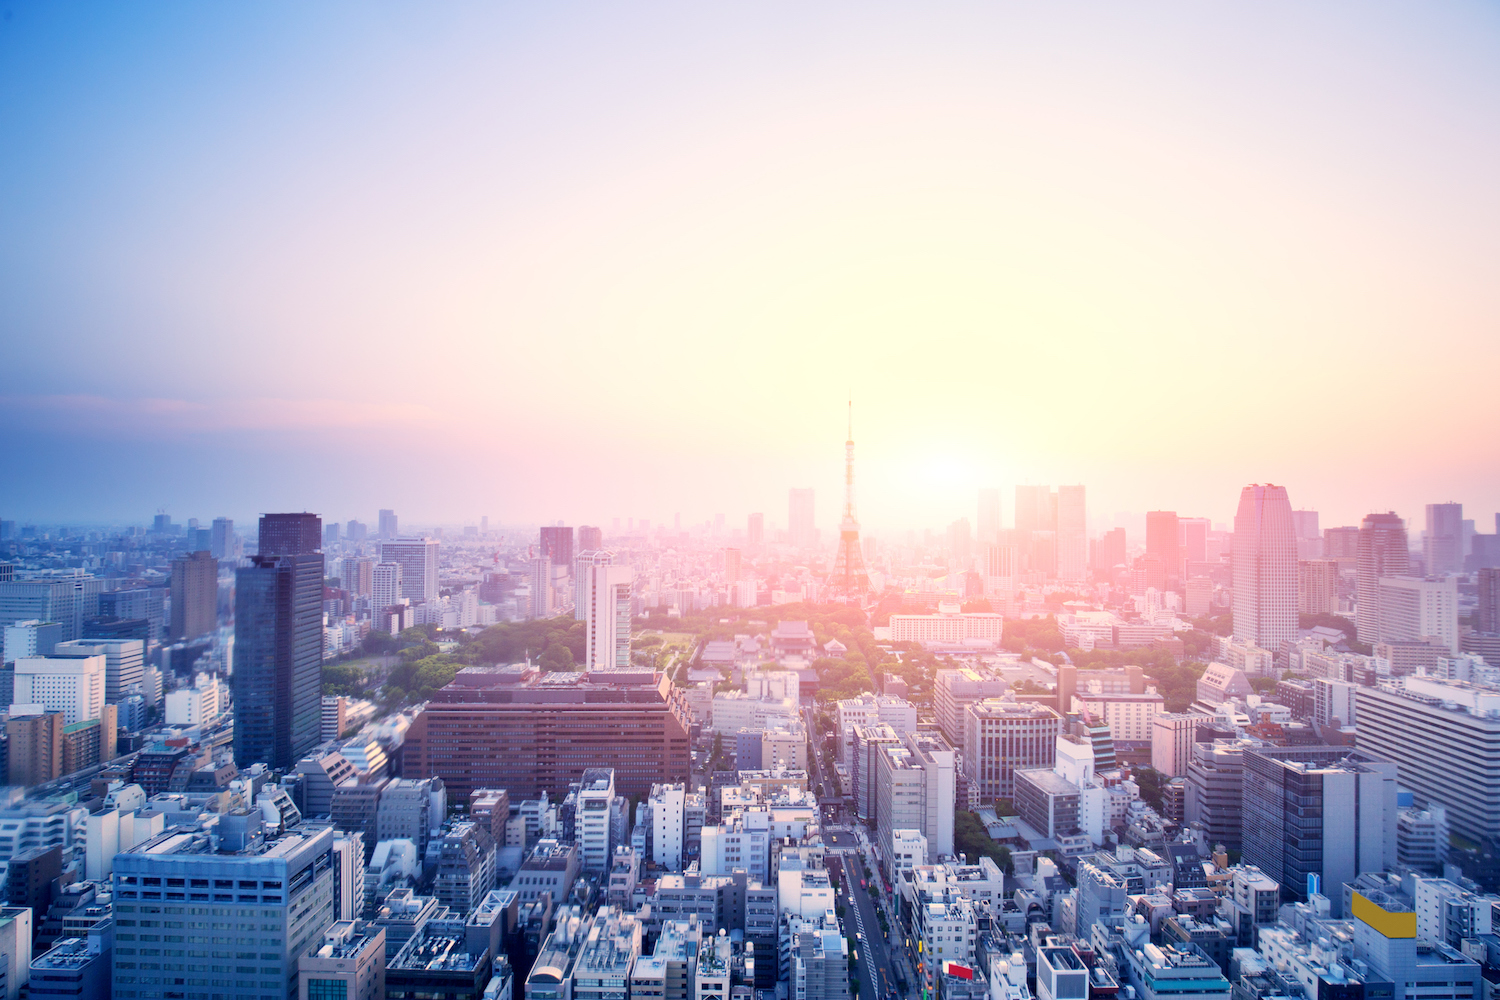 We can take the best that is our culture – our high level of hospitality, our high team spirit – and become a global leader. Tokyo can become an advanced technology center in the world.